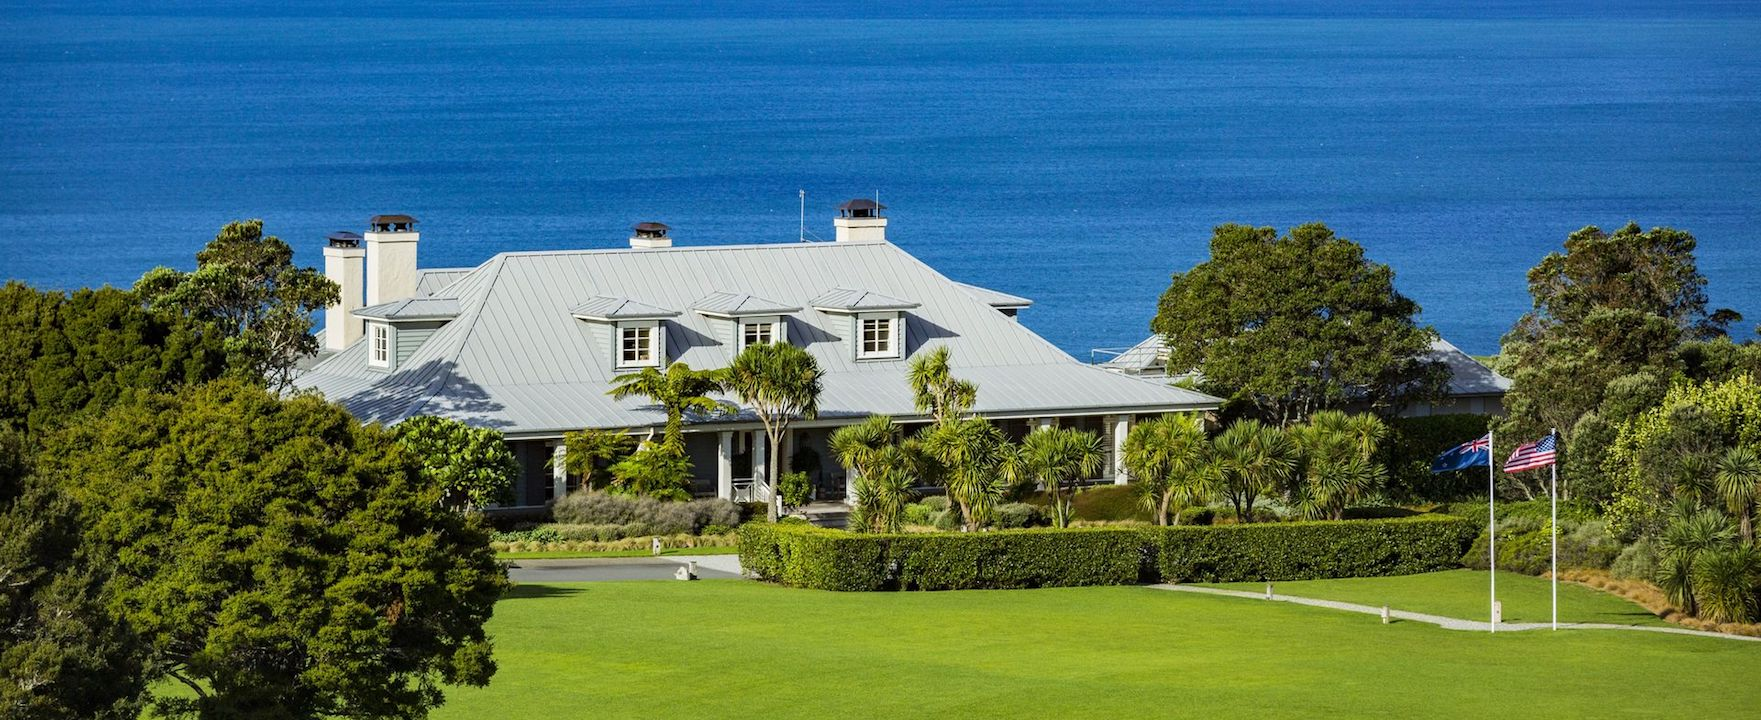 Robertson luxurious Lodges Kauri Cliffs , Matauri Bay Northland / New Zealand